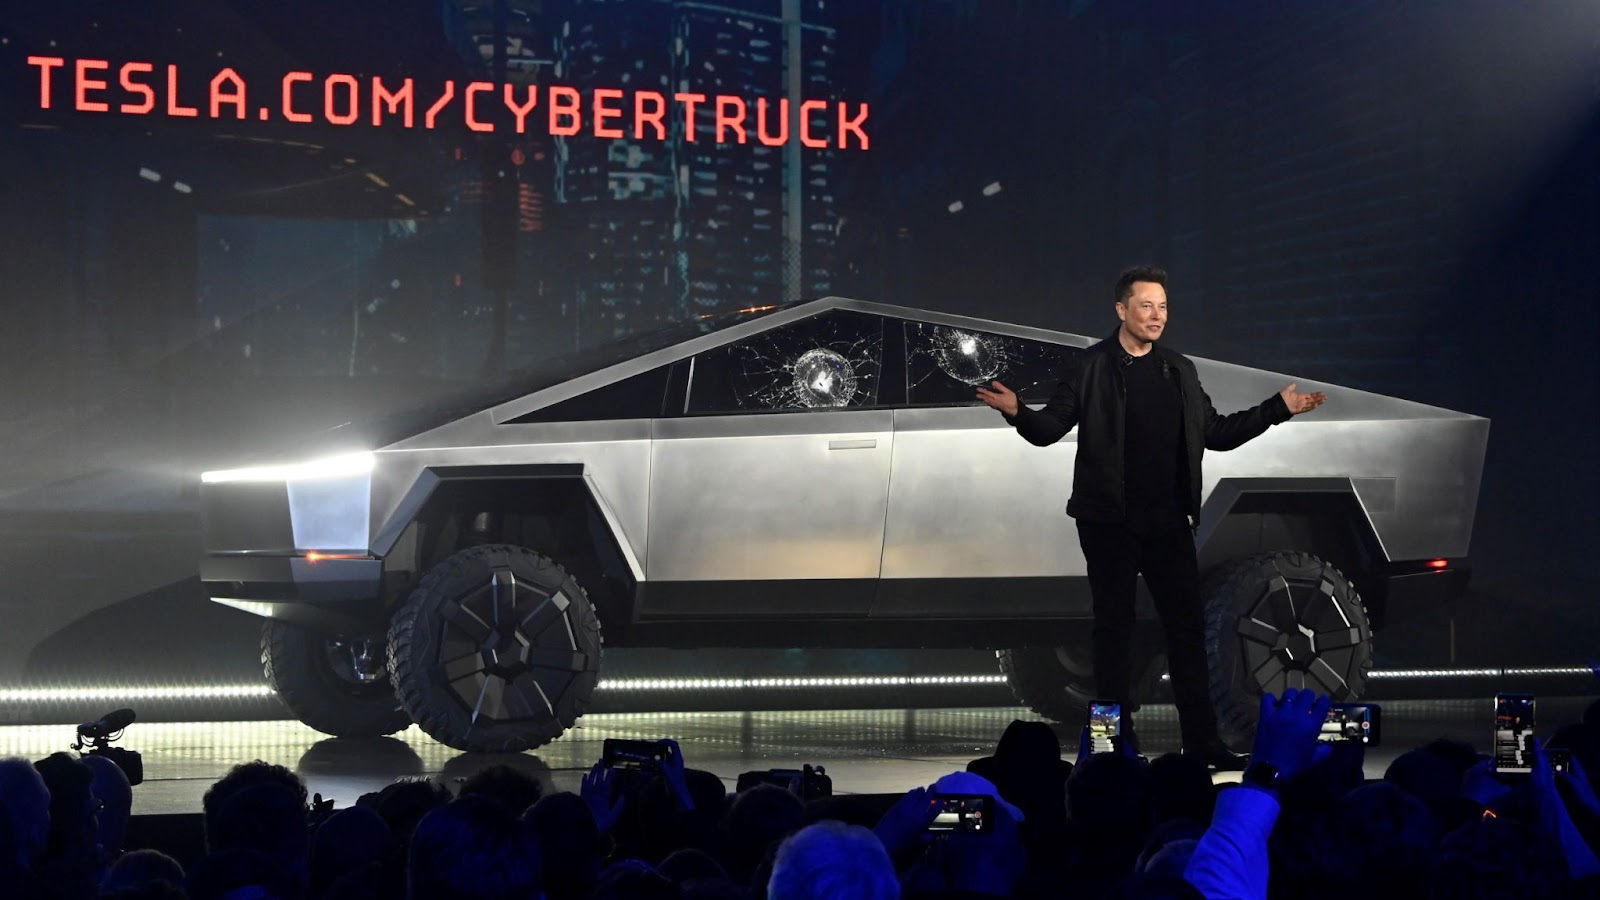 Tesla Motors Cybertruck